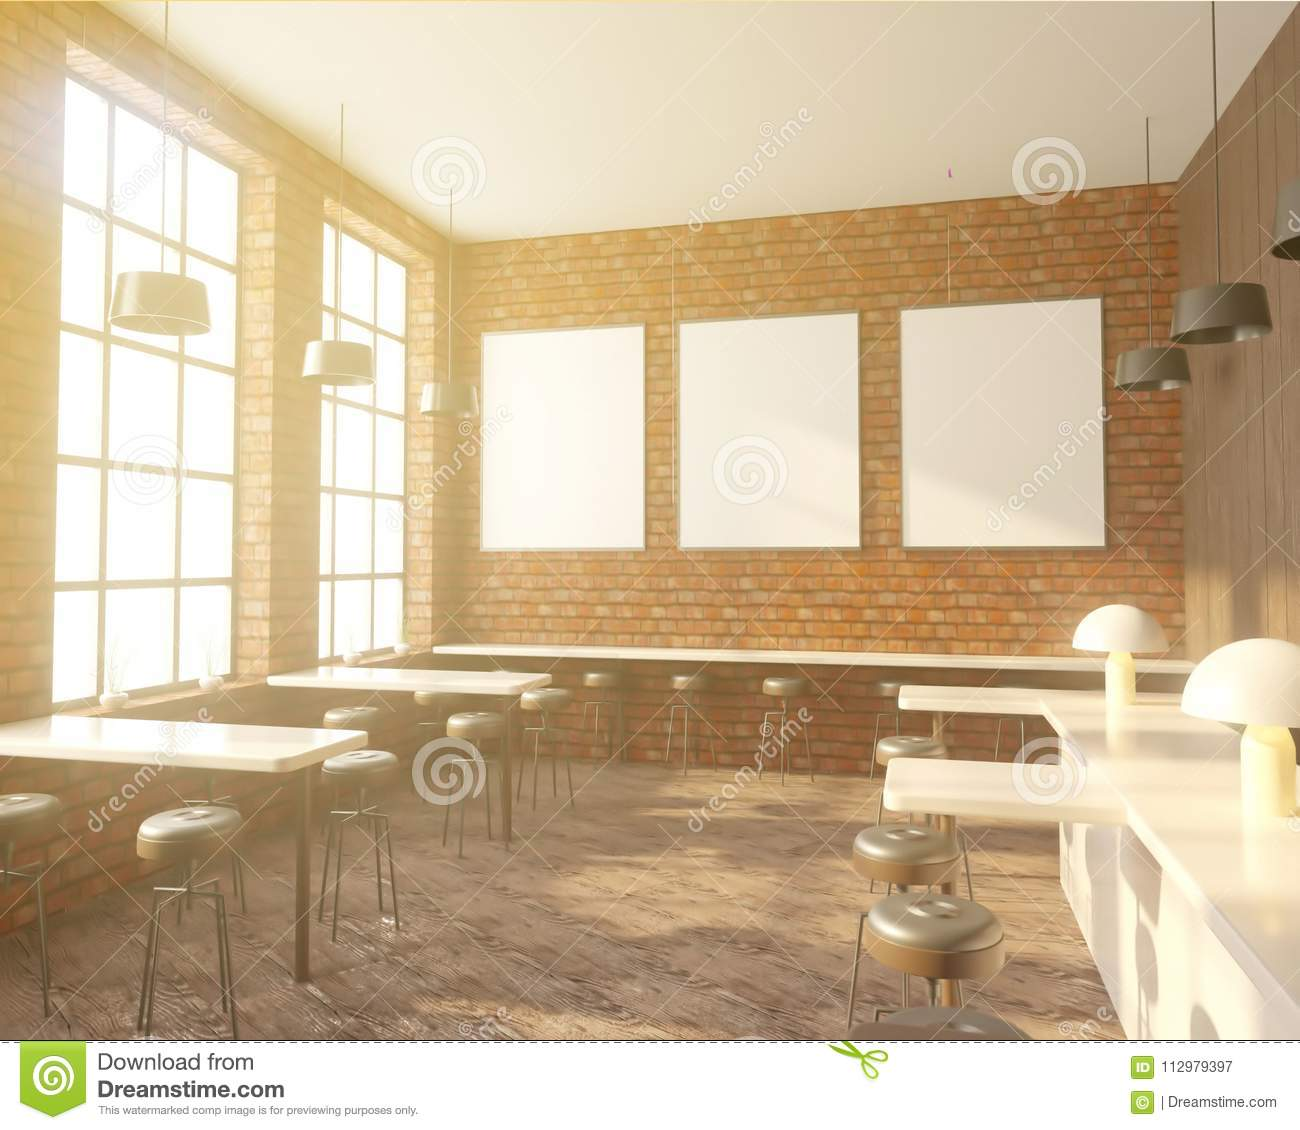 Bar interior with a row of tables near the windows, wooden floor. 3d rendering. Mock up.